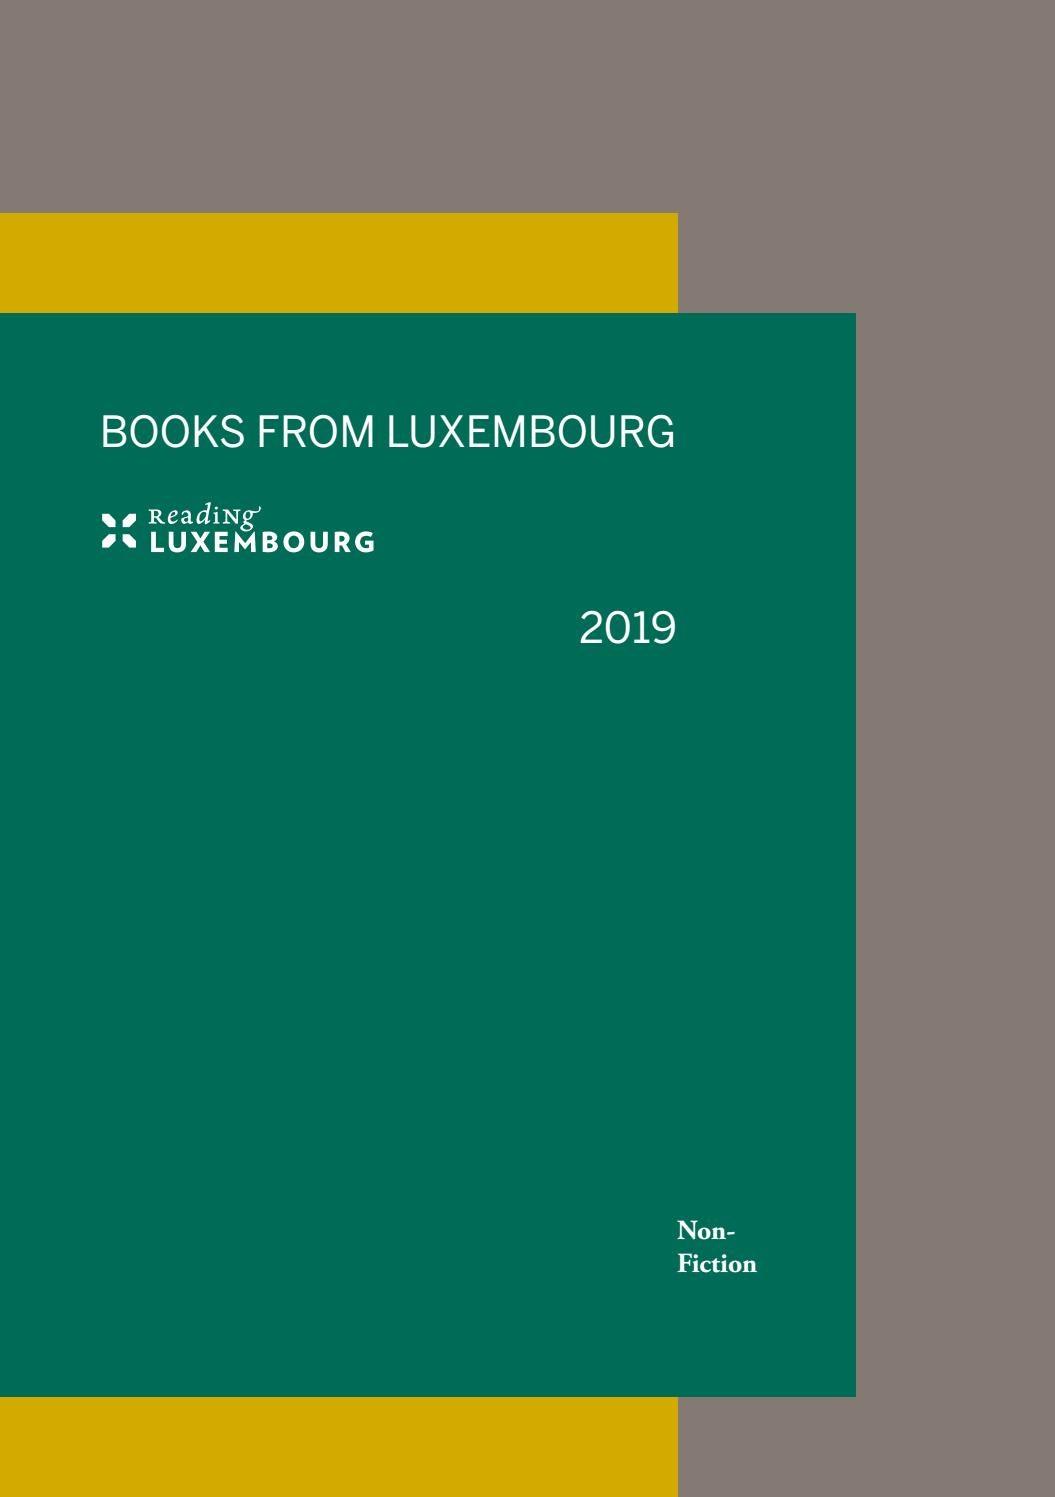 Reading Luxembourg Books 2019 Non From HWID2E9